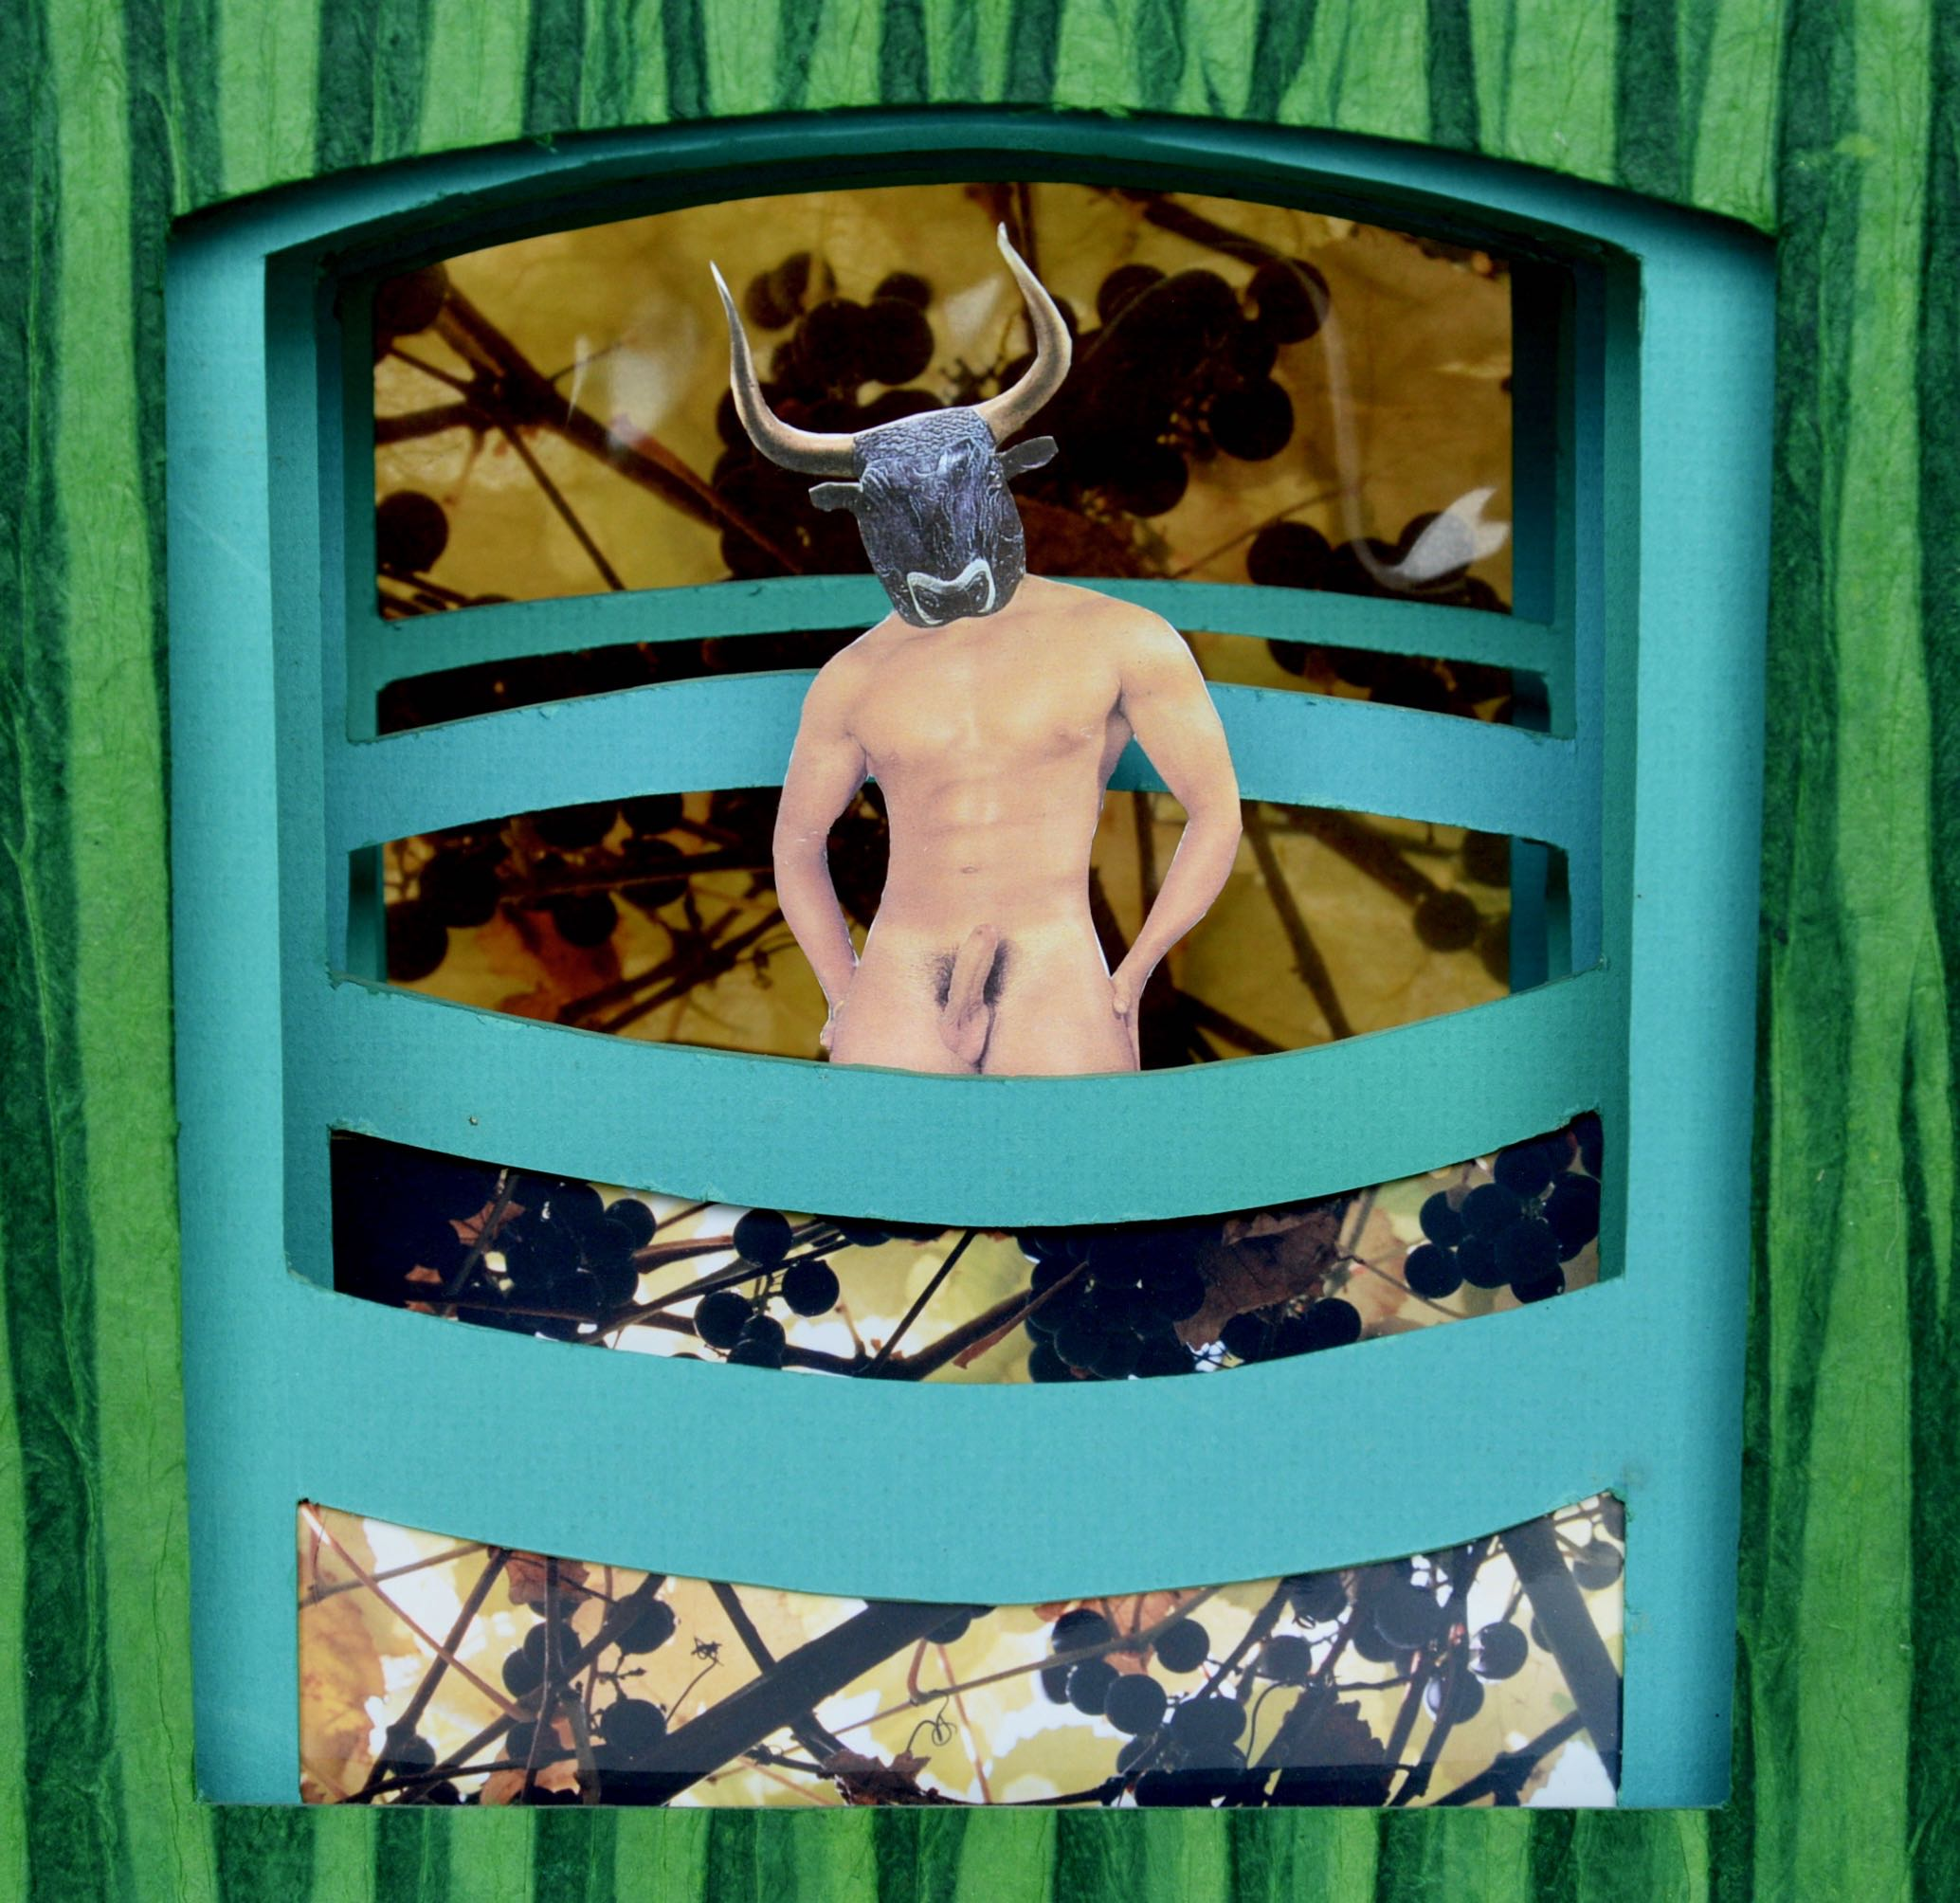 "Detail, Minotaur December, 2014, Paper and matt board collage, 9"" X 10"" X 5"", 400 CAD"